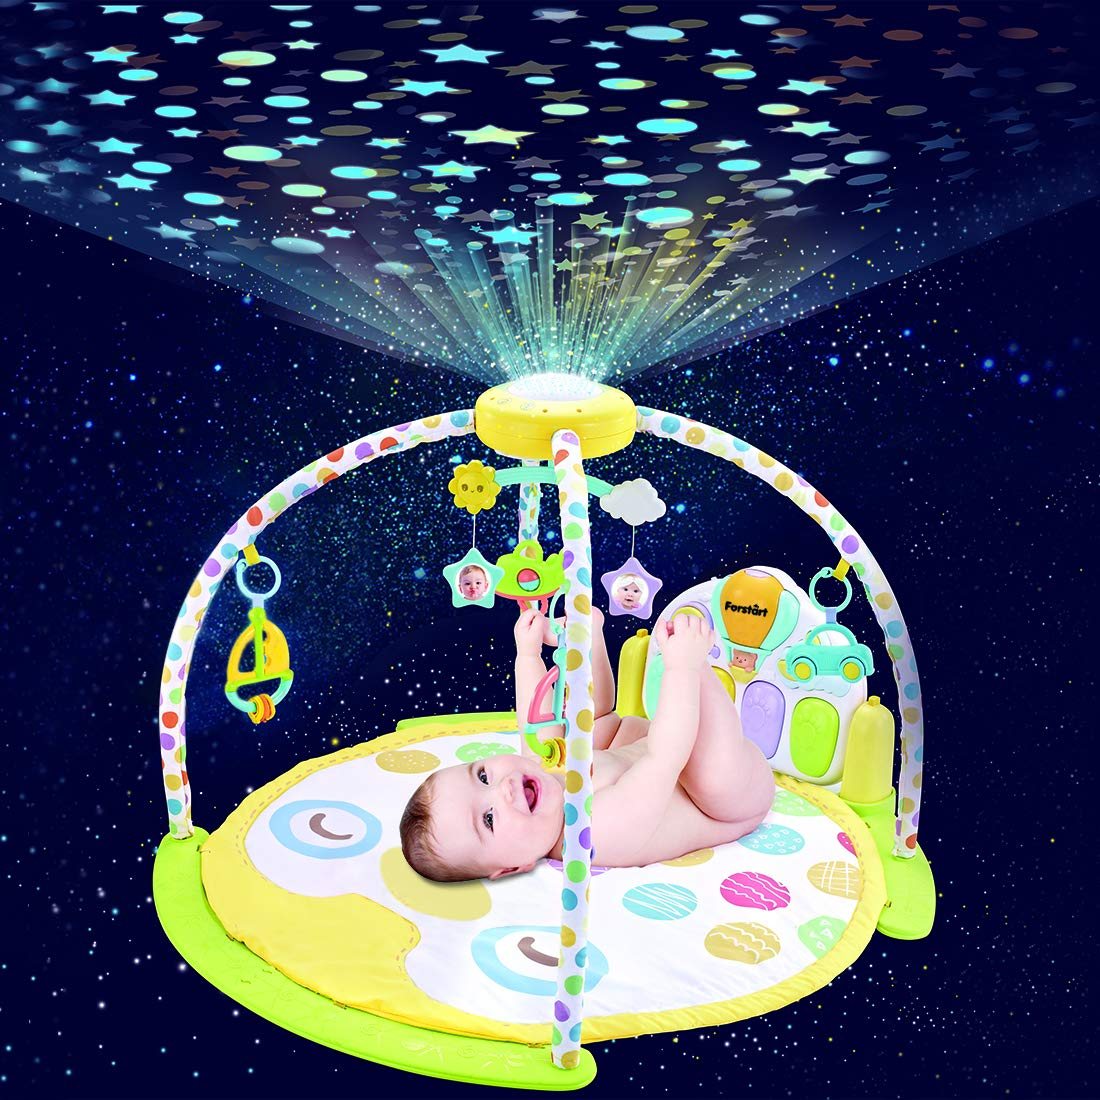 Forstart Kick and Play Piano Play Gym Night Moon Stars Light Projector Large Activity Play Mat Newborn Playmat Baby 1-18 Month Sit Lay Down Infant Tummy Time Sensory Development Educational Playtime